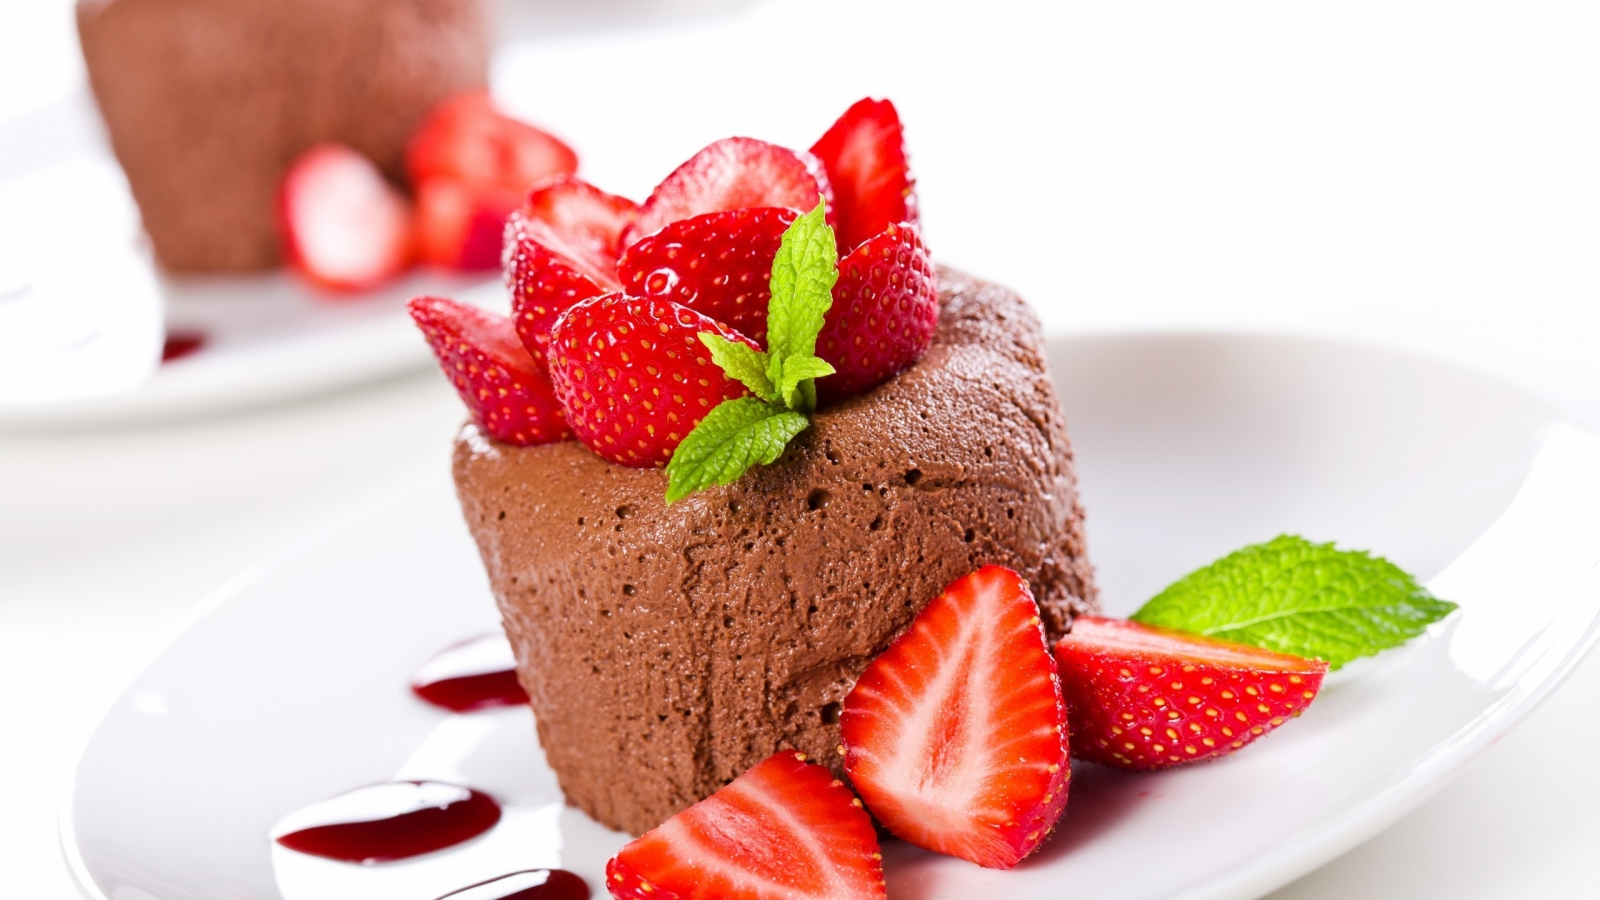 Chocolate Mousse for 1600 x 900 HDTV resolution